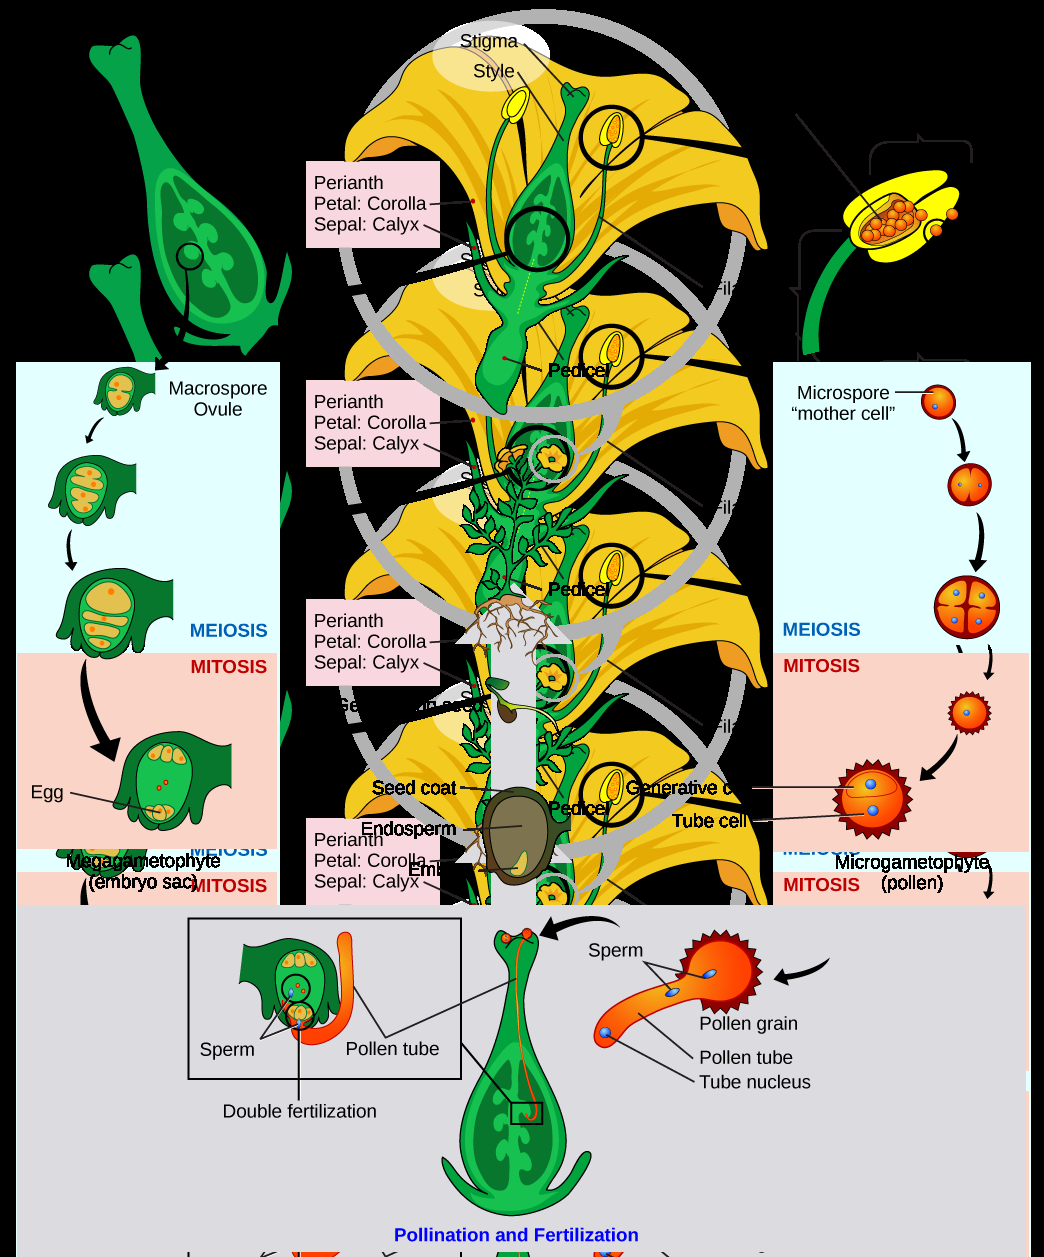 Illustration shows a tulip in cross section at the top of a clockwise circular series of images. An enlargement of the anther shows microsporangium inside. One microspore (the